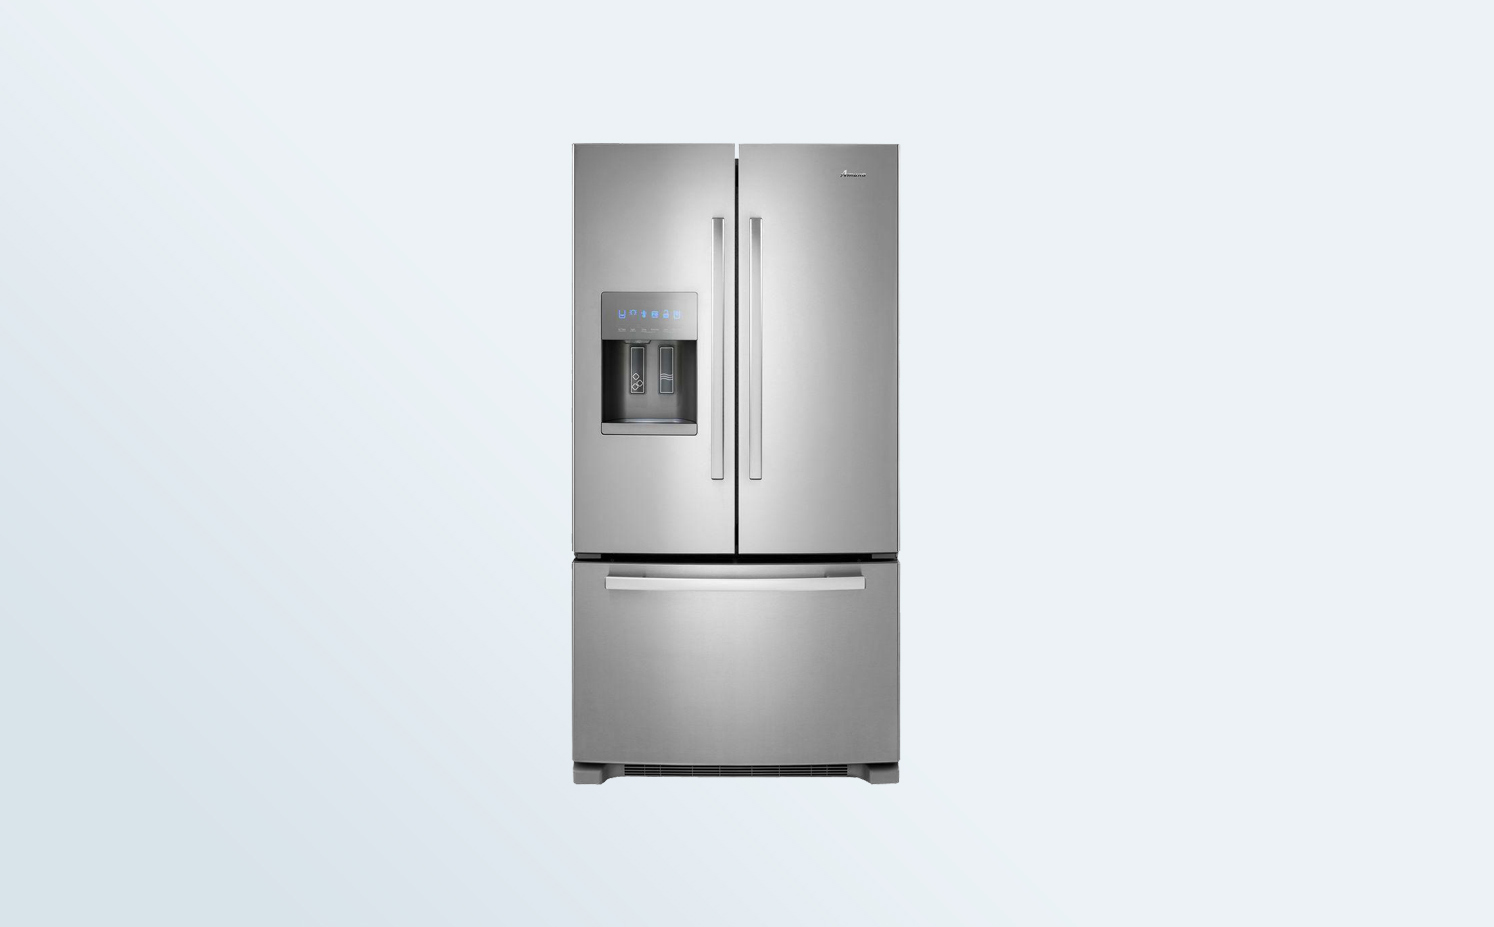 Best Counter Depth Refrigerator 2015 >> Best French Door Refrigerators 2019 Reviews Of Top Brands Top